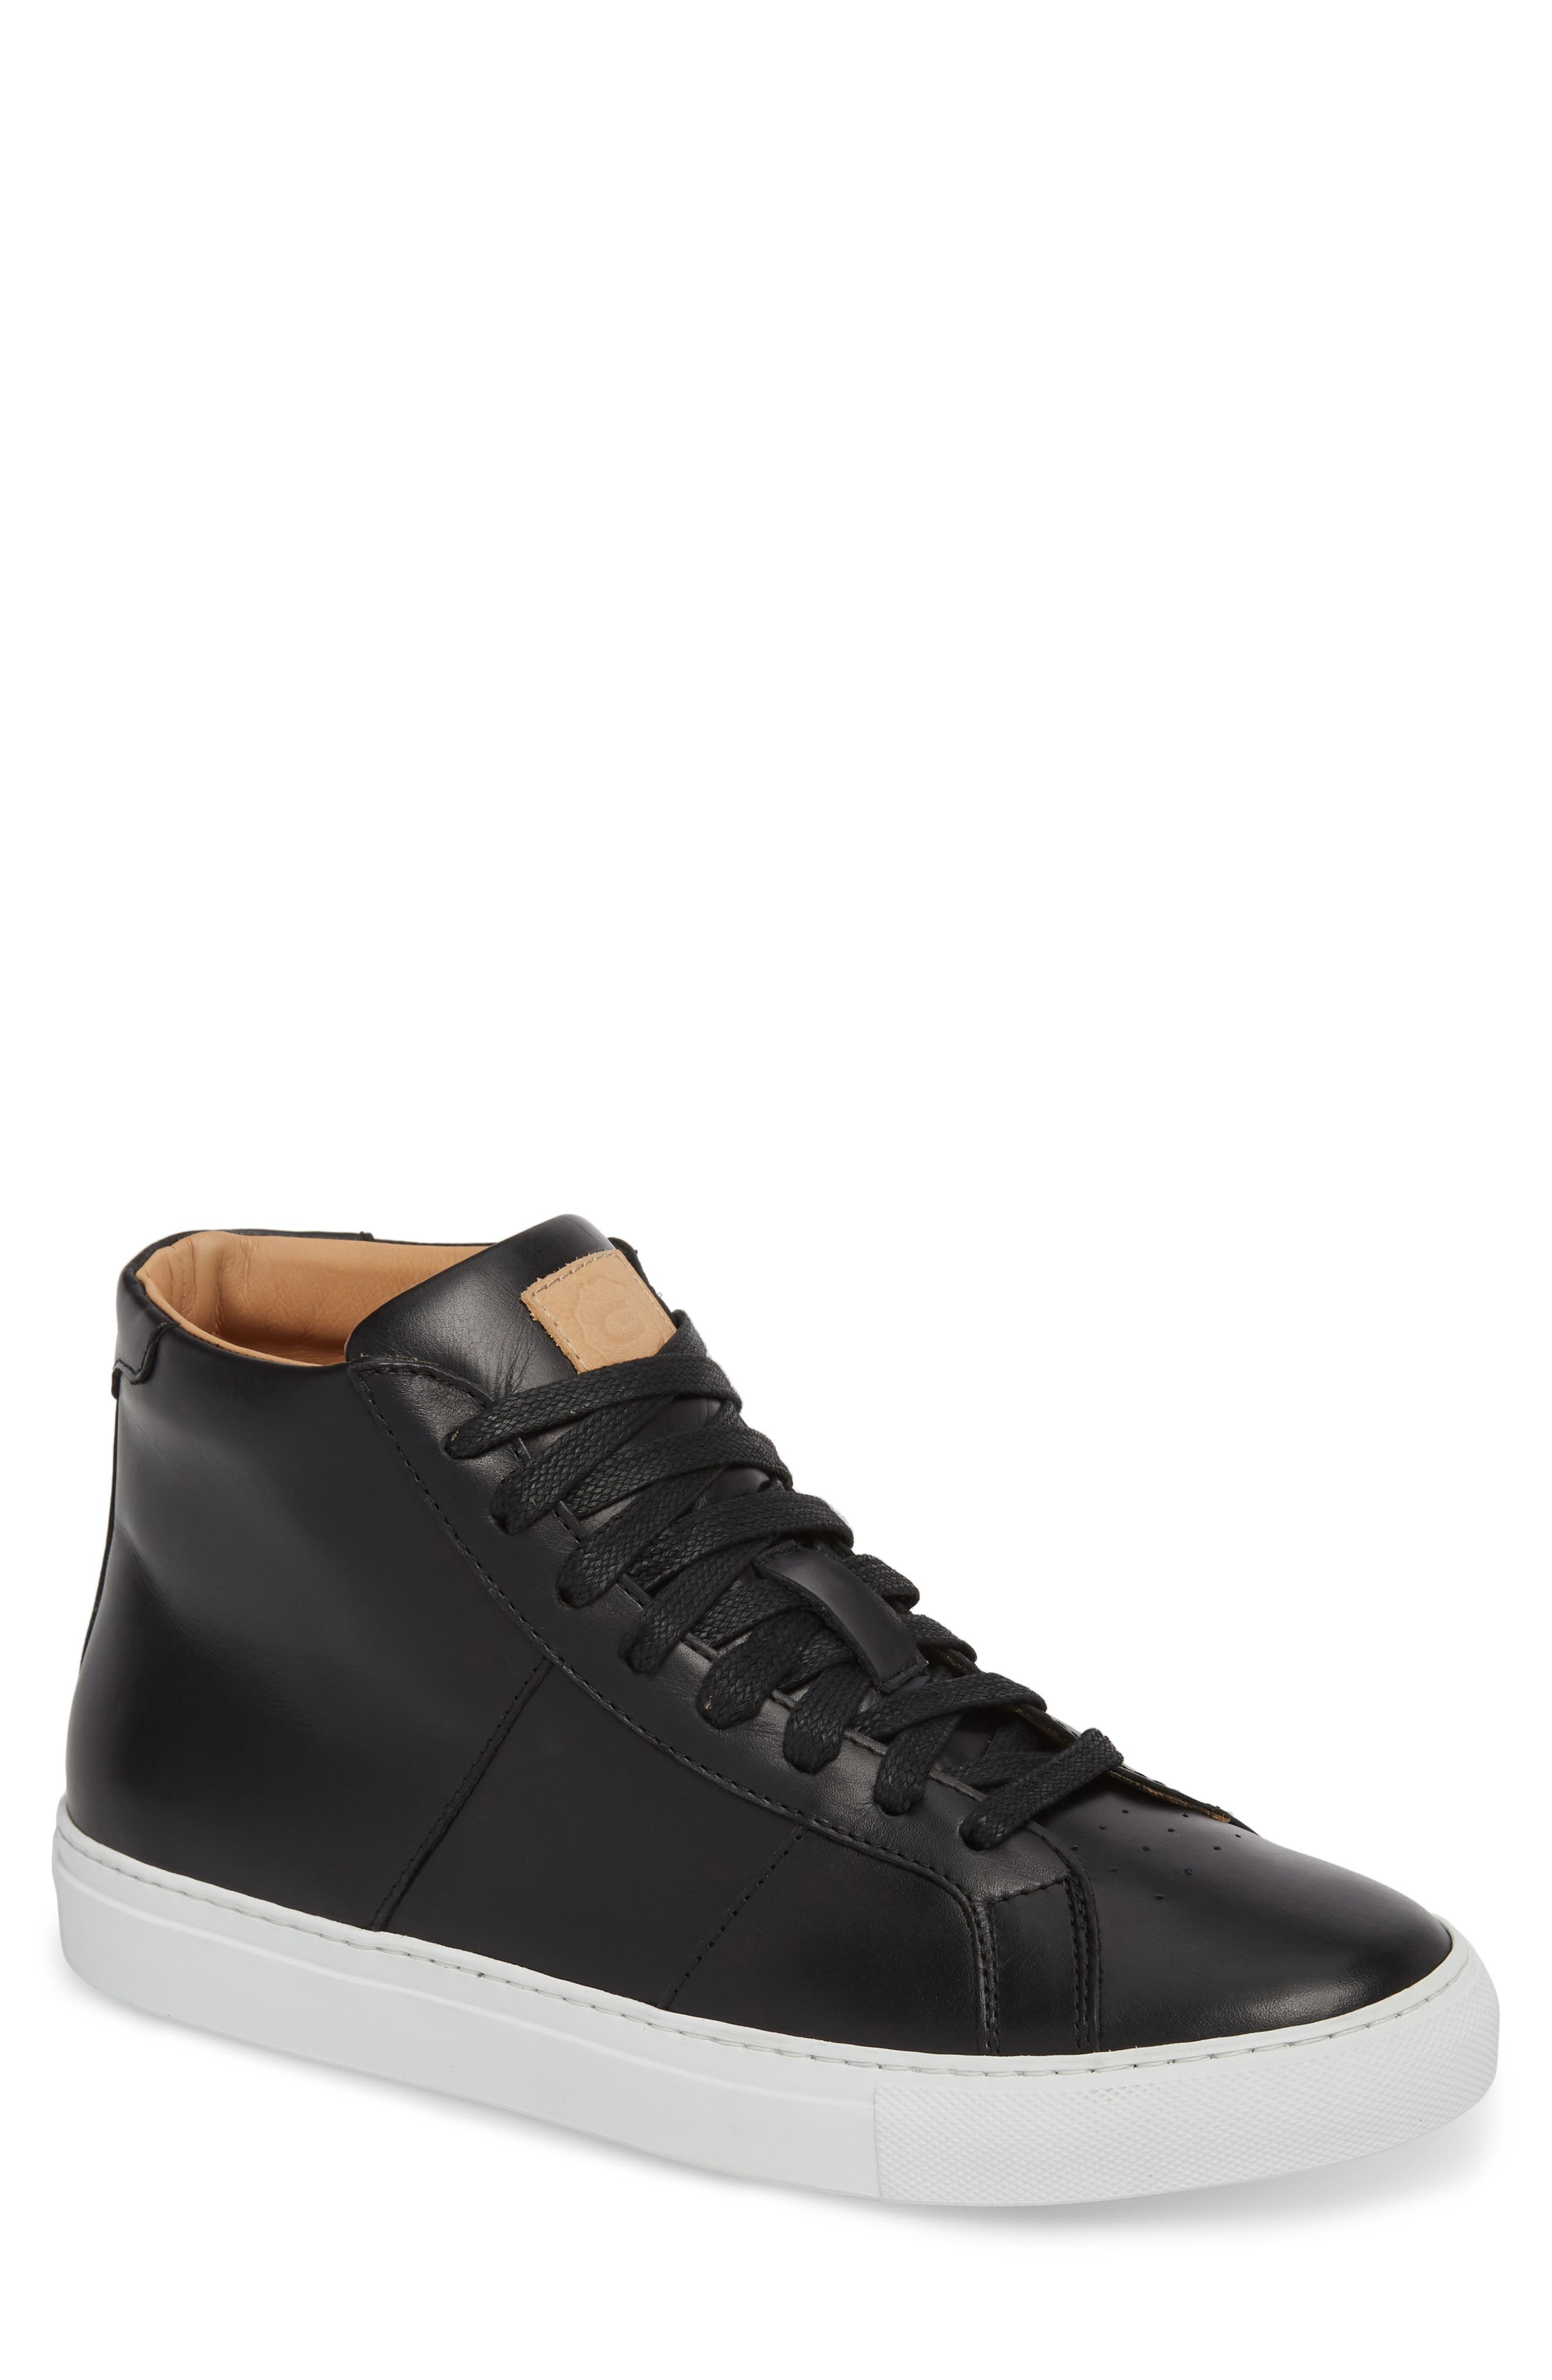 Royale High Top Sneaker,                         Main,                         color, 001